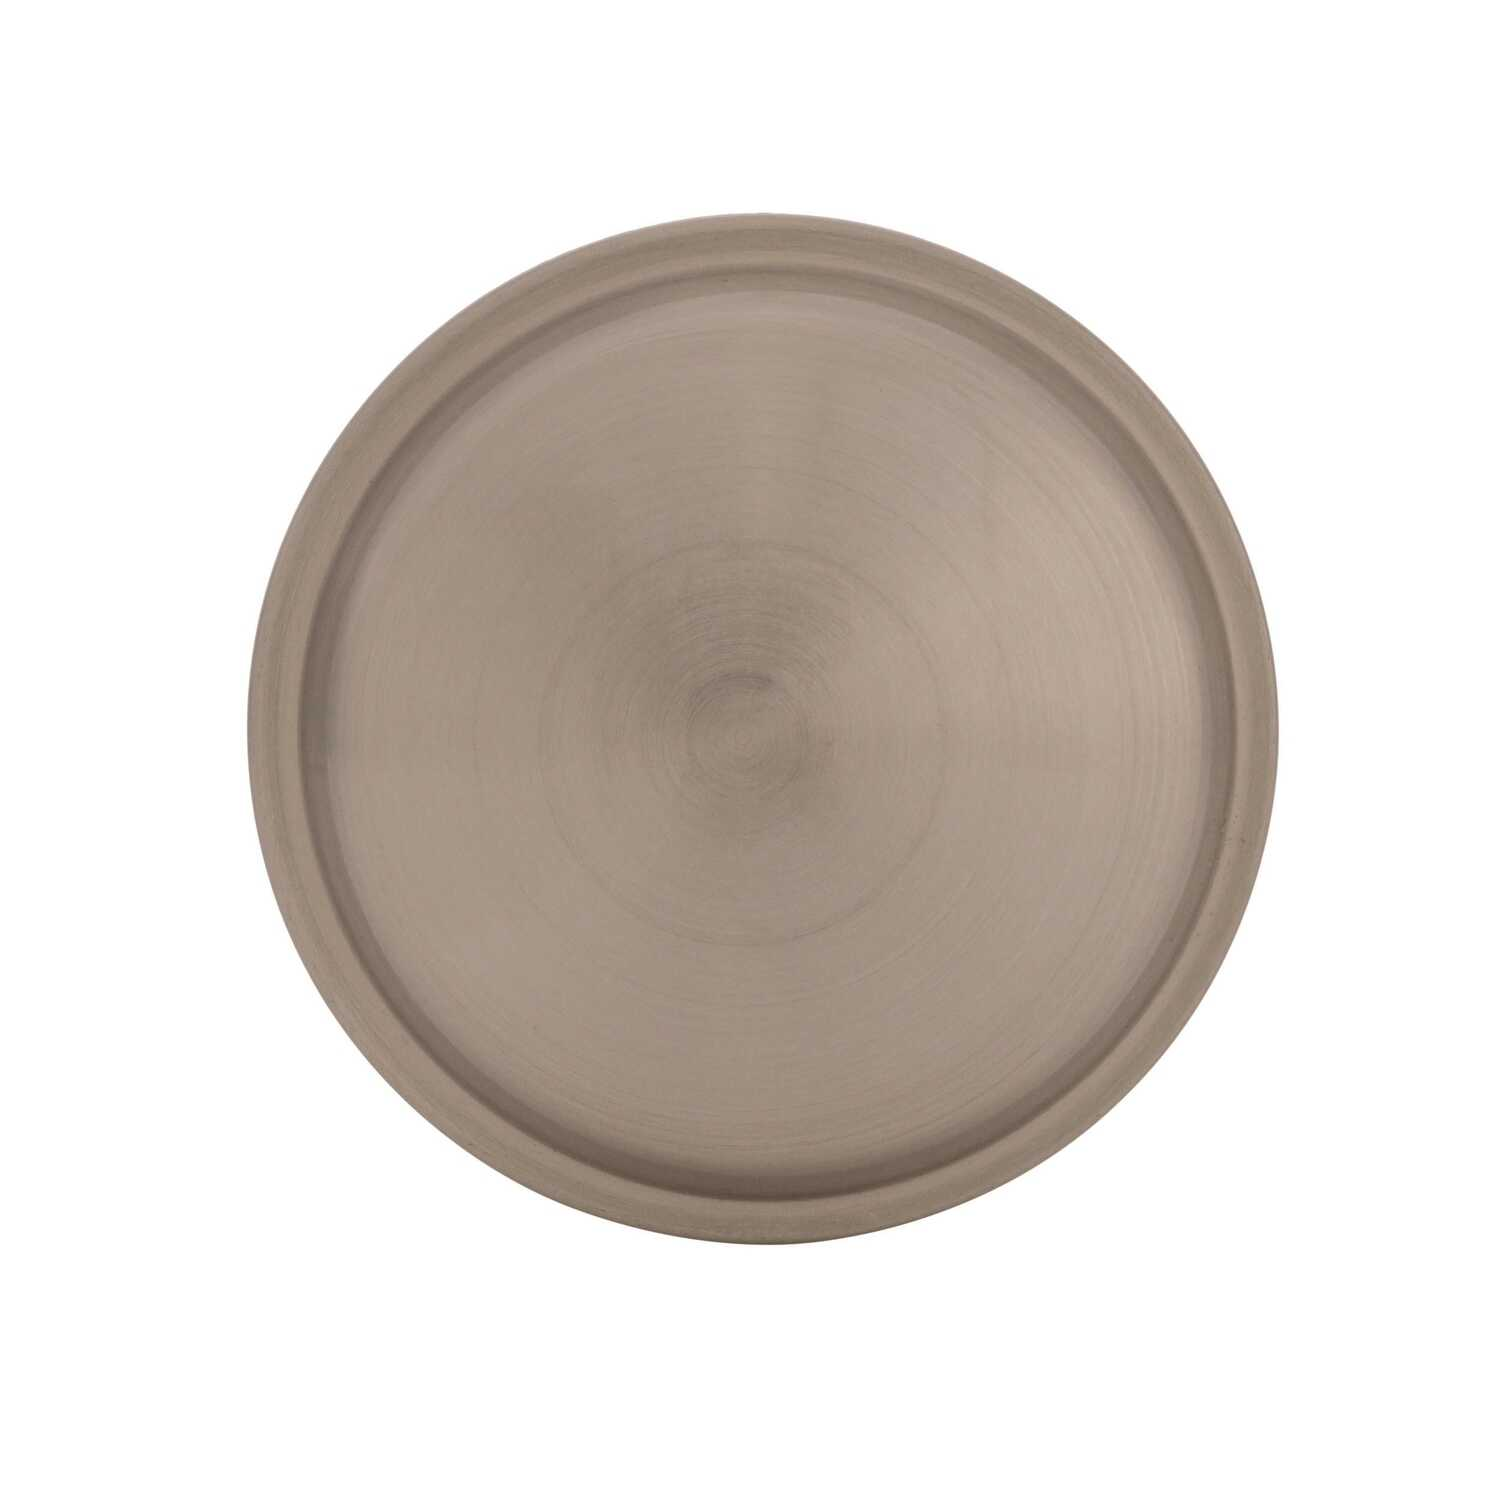 Amerock  Westerly Collection  Round  Cabinet Knob  1-3/16 in. Dia. 1-1/8 in. Satin Nickel  1 pk